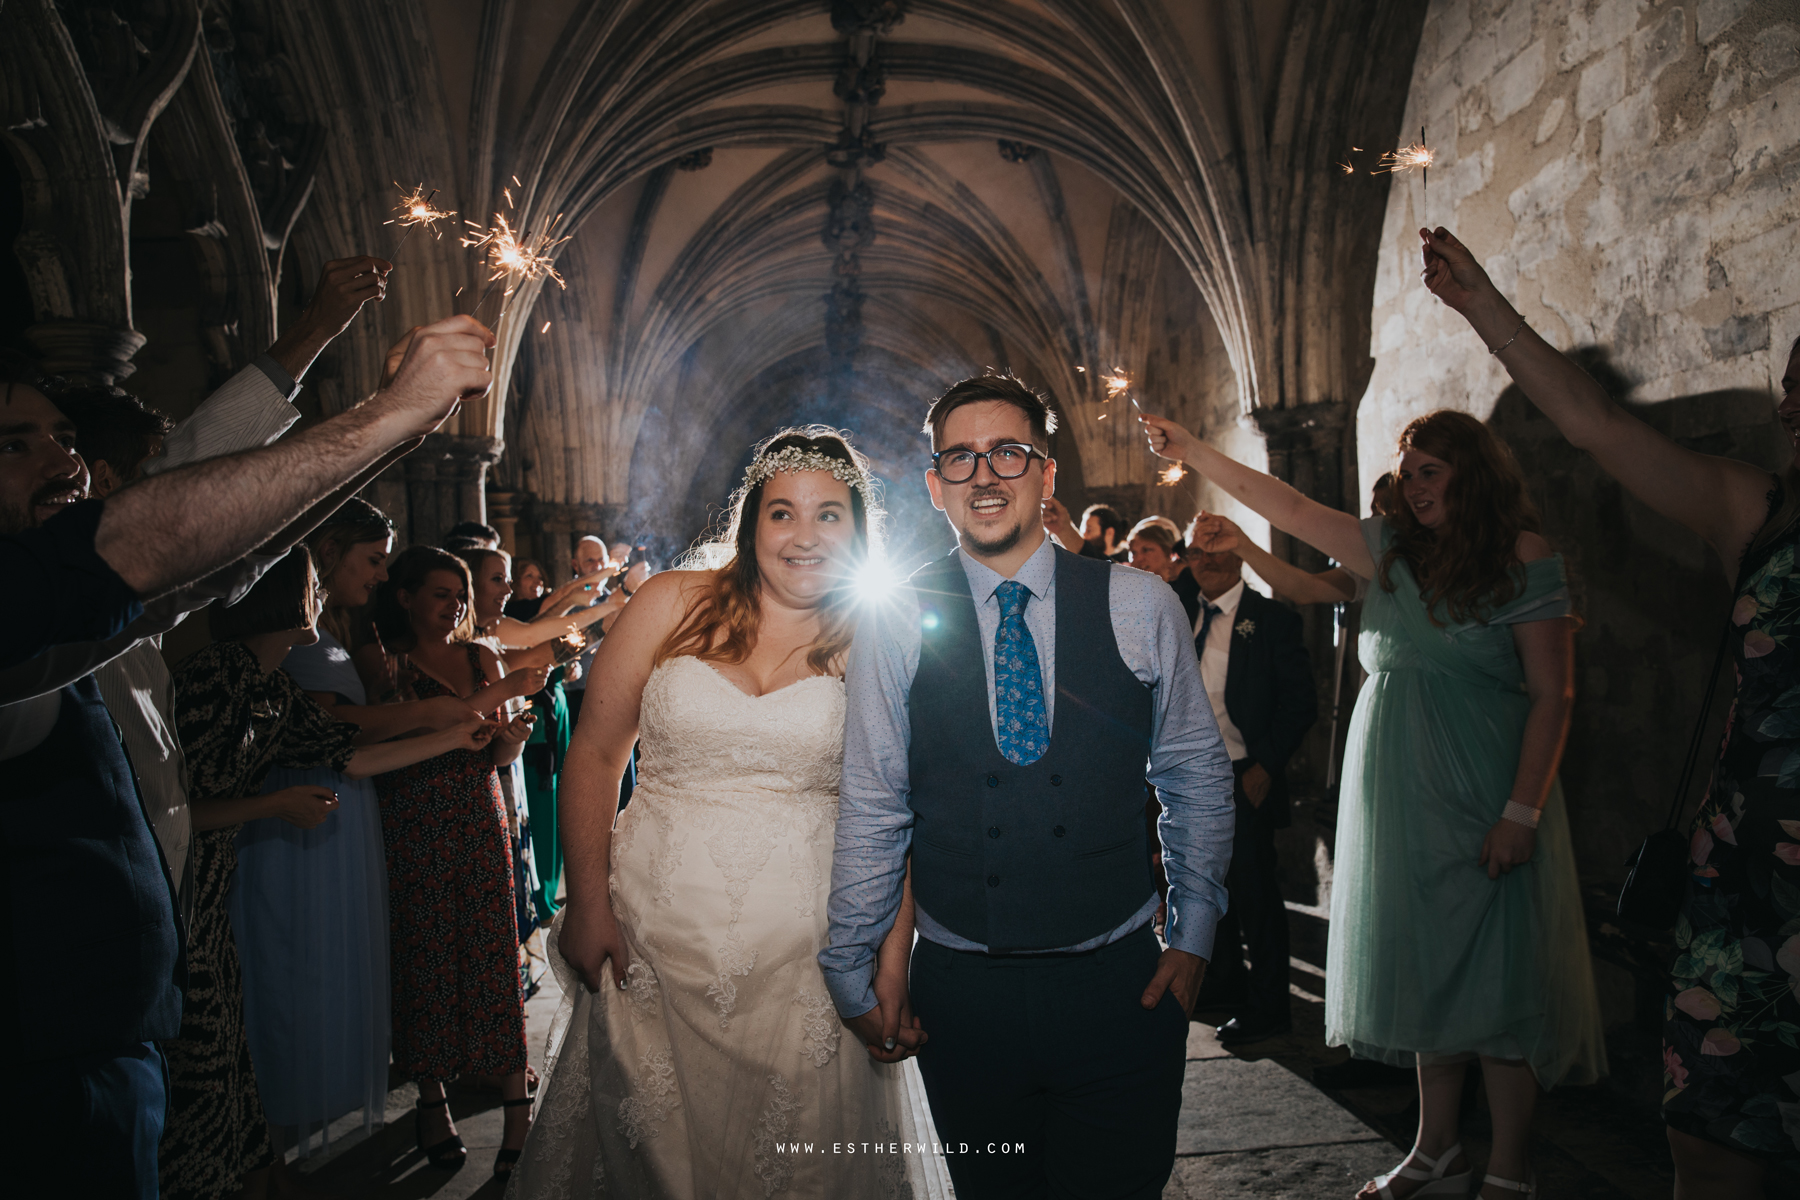 Norwich_Castle_Arcade_Grosvenor_Chip_Birdcage_Cathedral_Cloisters_Refectory_Wedding_Photography_Esther_Wild_Photographer_Norfolk_Kings_Lynn_3R8A3640.jpg